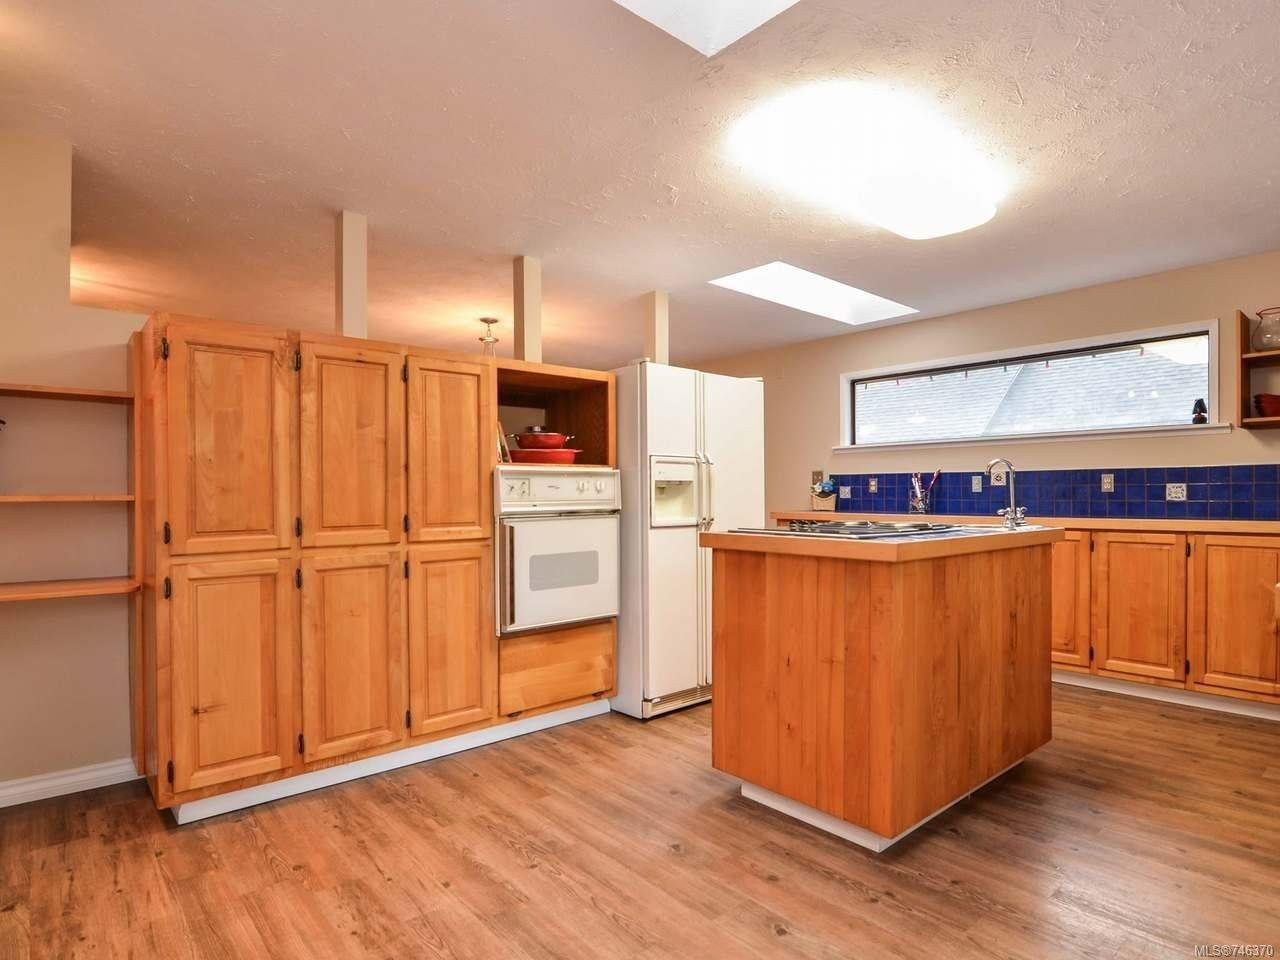 Photo 21: Photos: 1720 Galerno Rd in CAMPBELL RIVER: CR Campbell River Central House for sale (Campbell River)  : MLS®# 746370